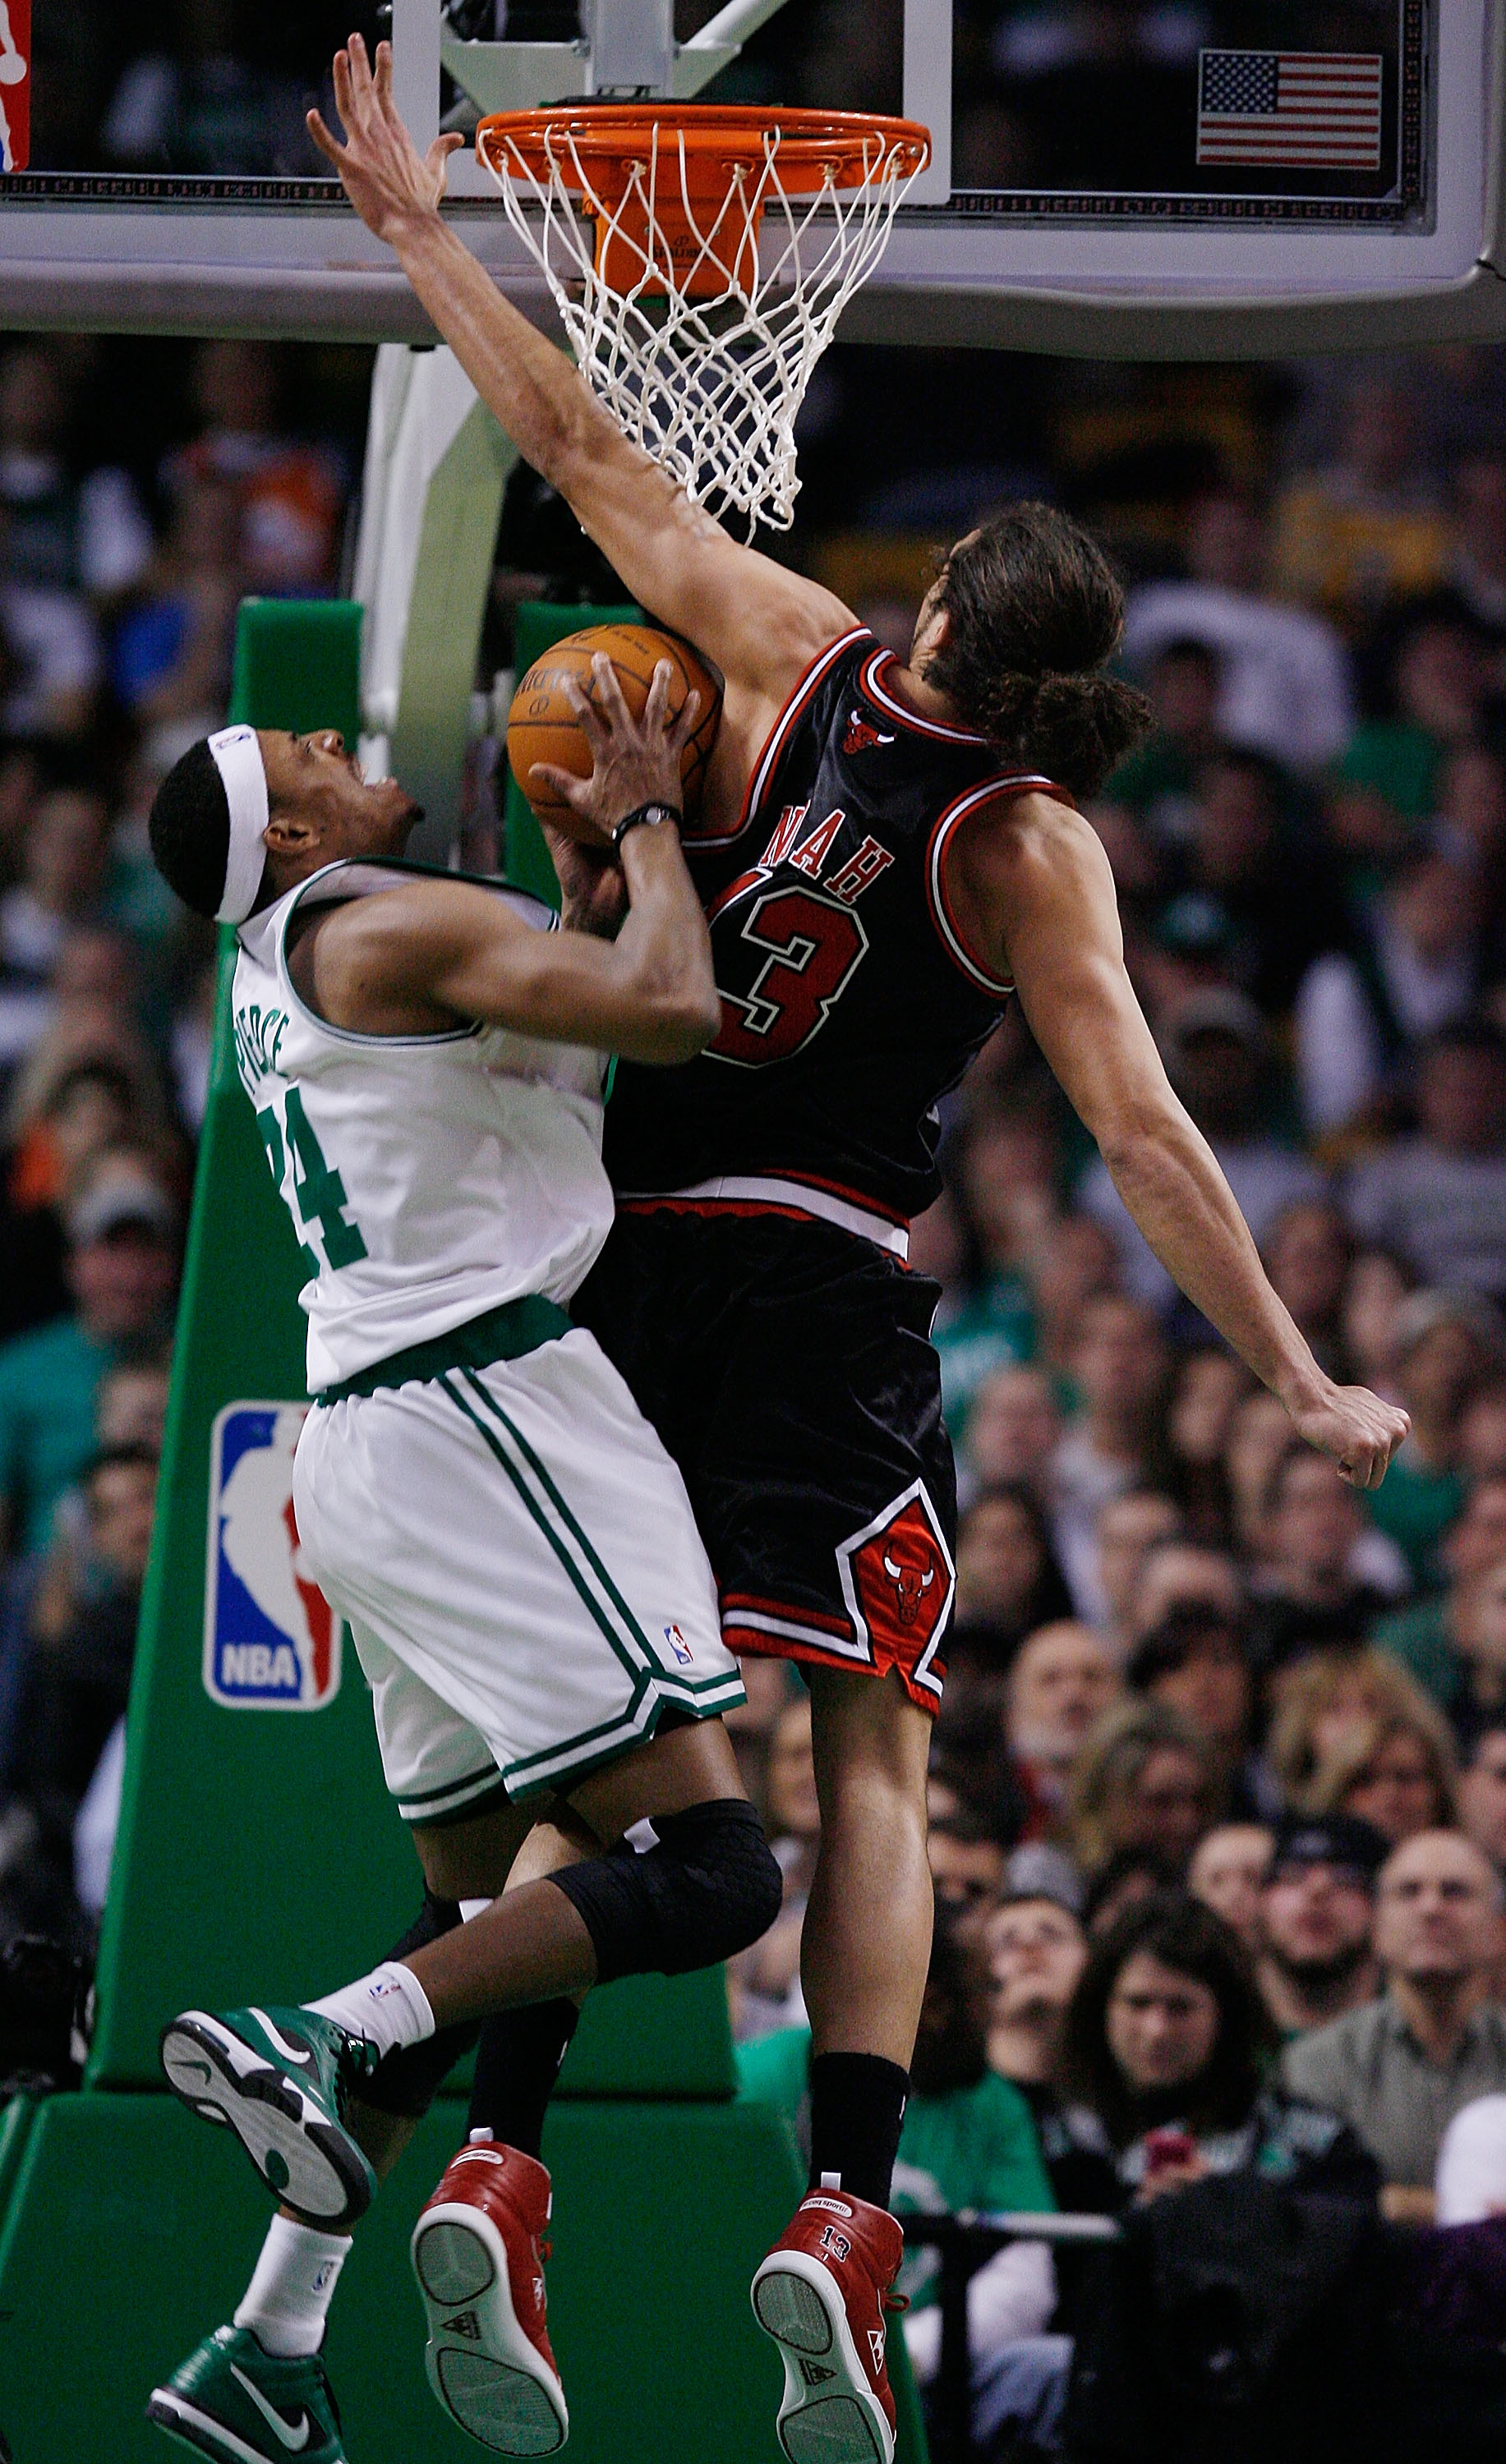 BOSTON - JANUARY 14:  Paul Pierce #34 of the Boston Celtics is blocked by Joakim Noah #13 of the Chicago Bulls at the TD Garden on January 14, 2010 in Boston, Massachusetts. The Bulls defeated the Celtics 96-83. NOTE TO USER: User expressly acknowledges a